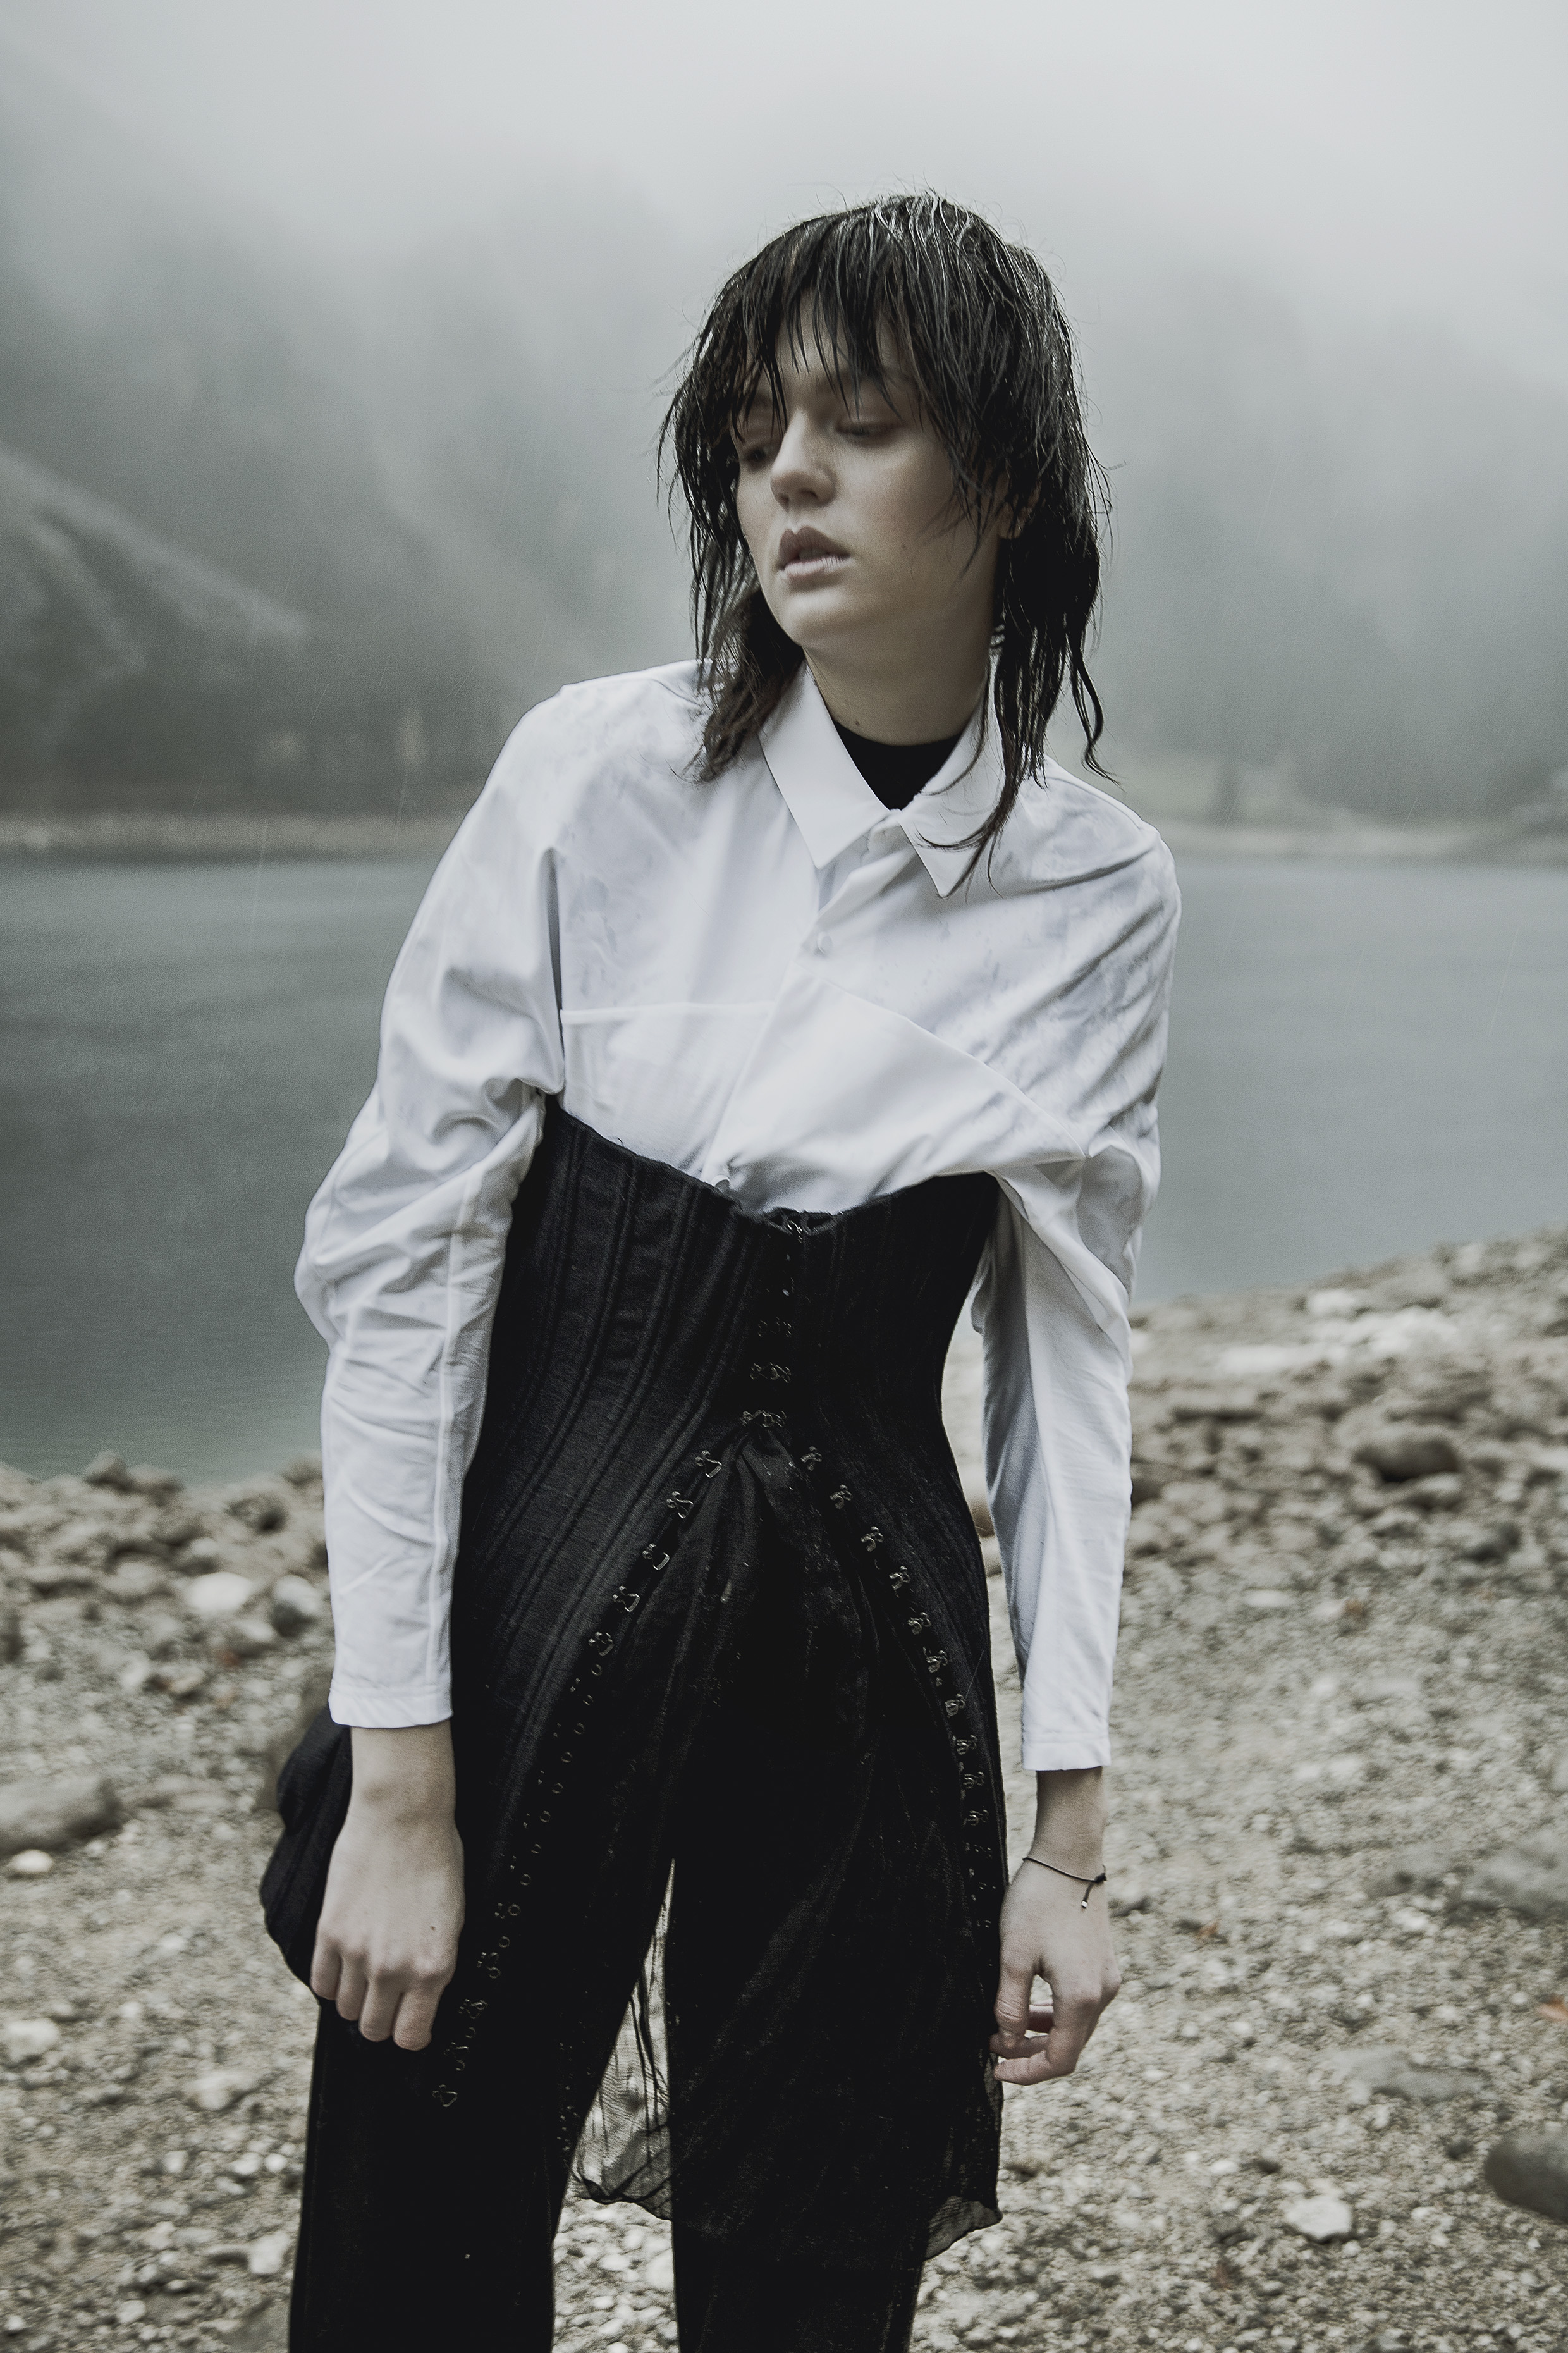 White cotton bat sleeves blouse by Kenta Matsushige | Black corset by Olivier Theyskens | Black Woolen wide leg trousers by Moon Young Hee